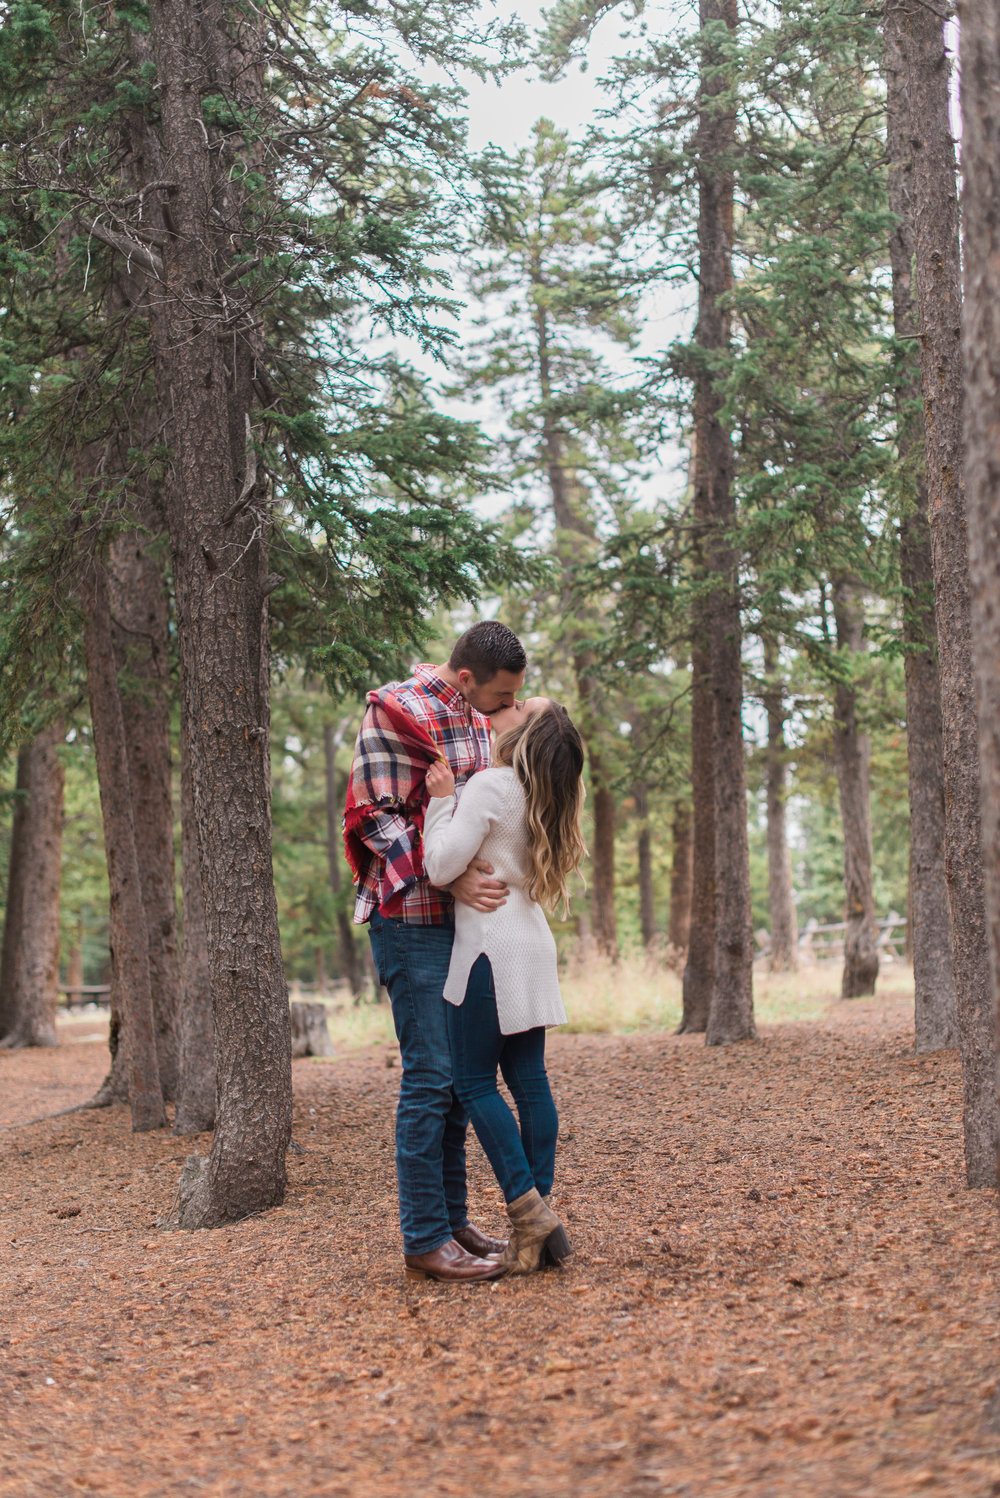 Shelbi and Colin Engagement-devorahroldanphotography-13.jpg